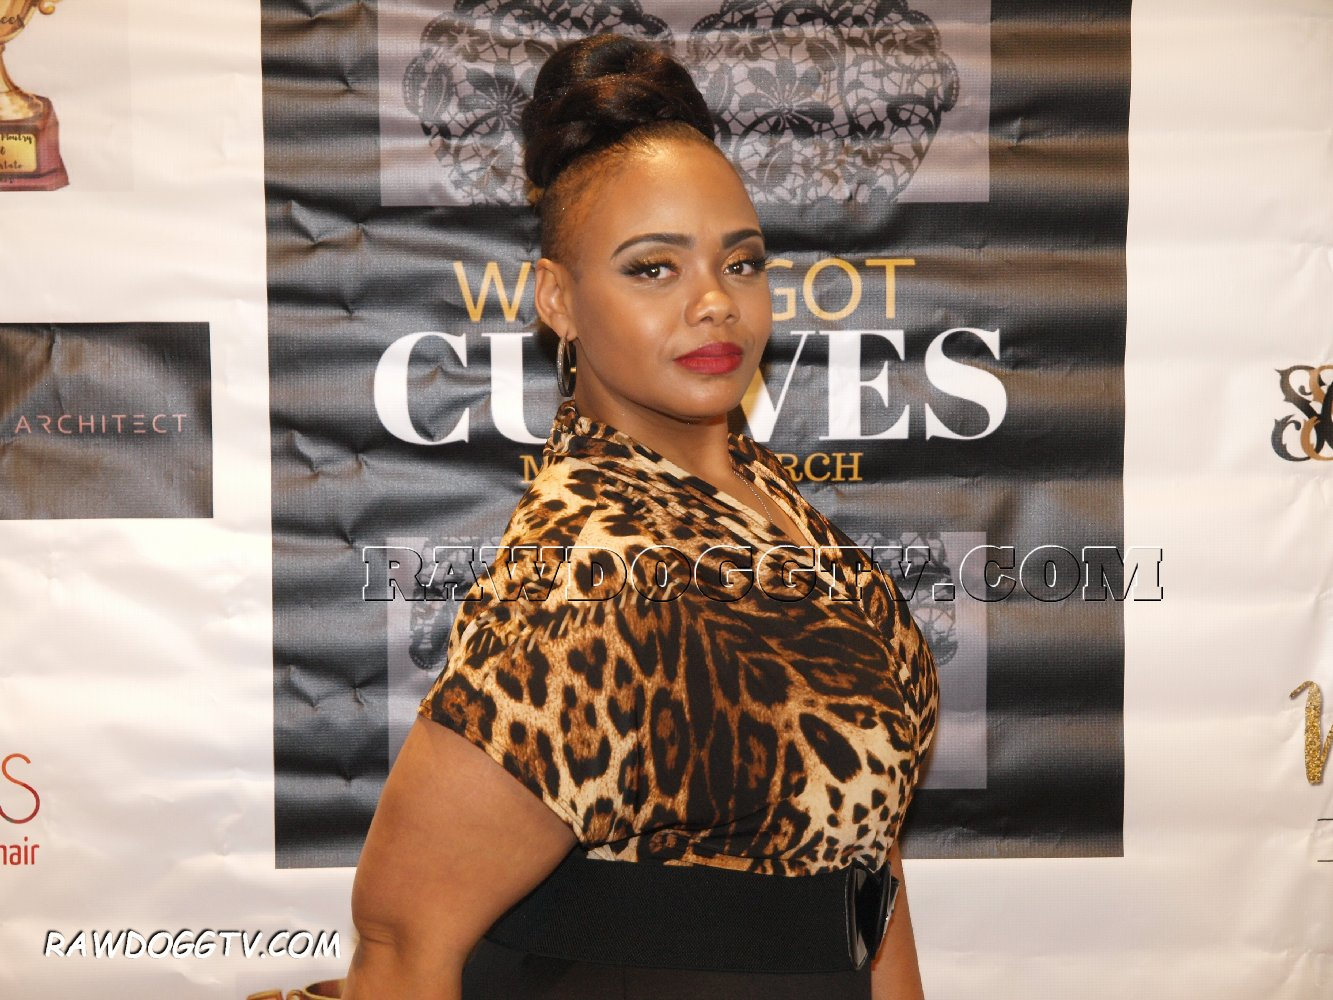 Whos Got Curves REALITY TV SHOW Atlanta Photos-HOLLYWOOD SOUTH PRESENTS httpsrawdoggtv (13)